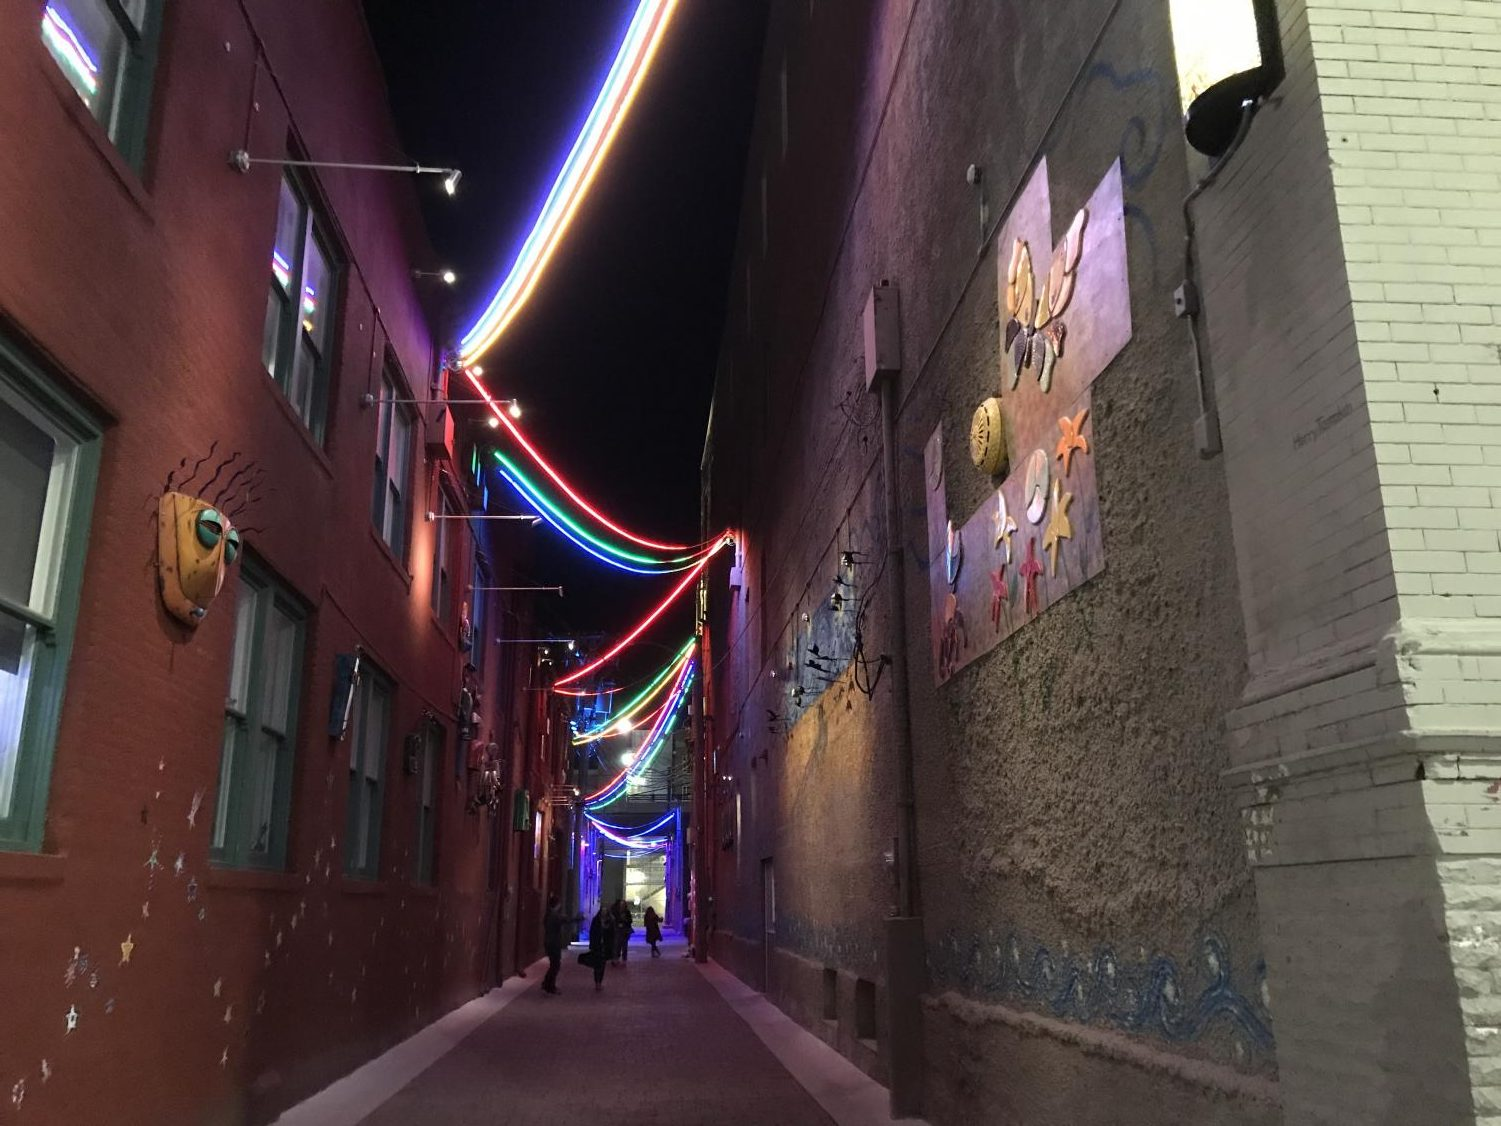 These multicolored strings of lights are an iconic spot for memorable pictures in downtown Lincoln. Located right next to Ivanna Cone, many All-State musicians enjoyed their time off by having an ice cream here.